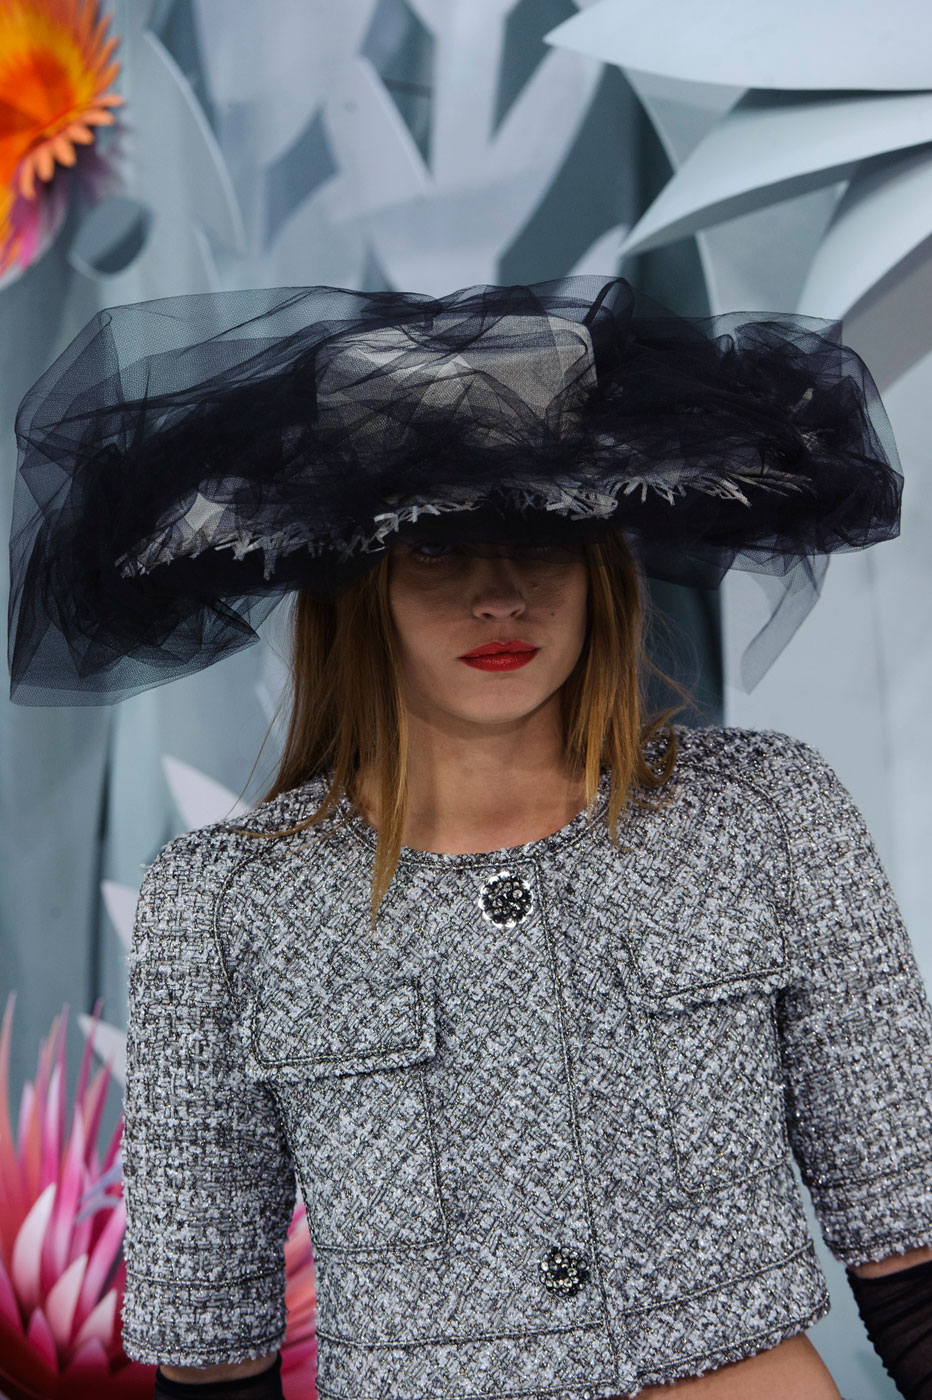 Chanel-fashion-runway-show-close-ups-haute-couture-paris-spring-summer-2015-the-impression-031